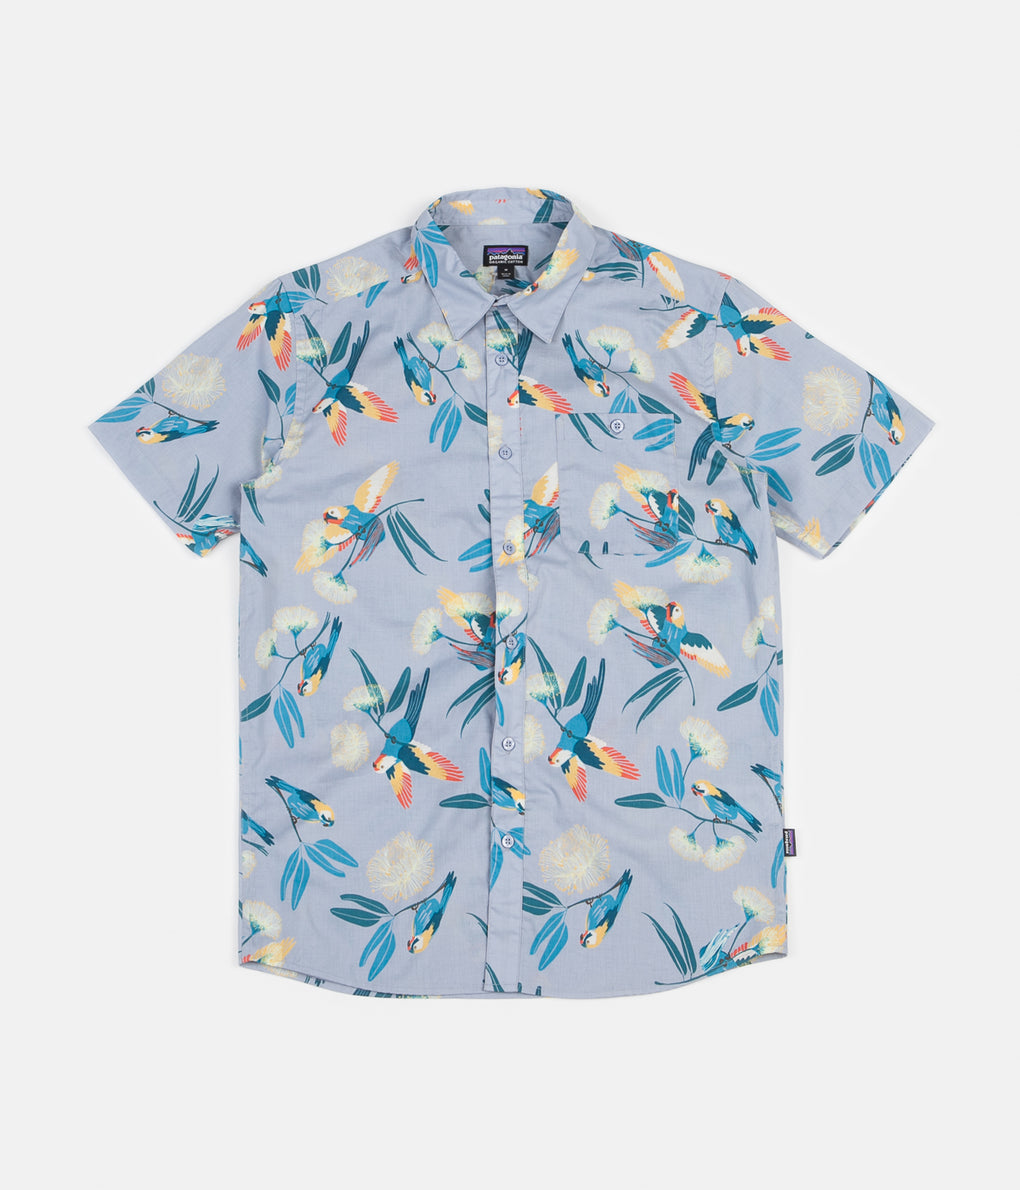 Patagonia Go To Shirt - Parrots: Ghost Purple